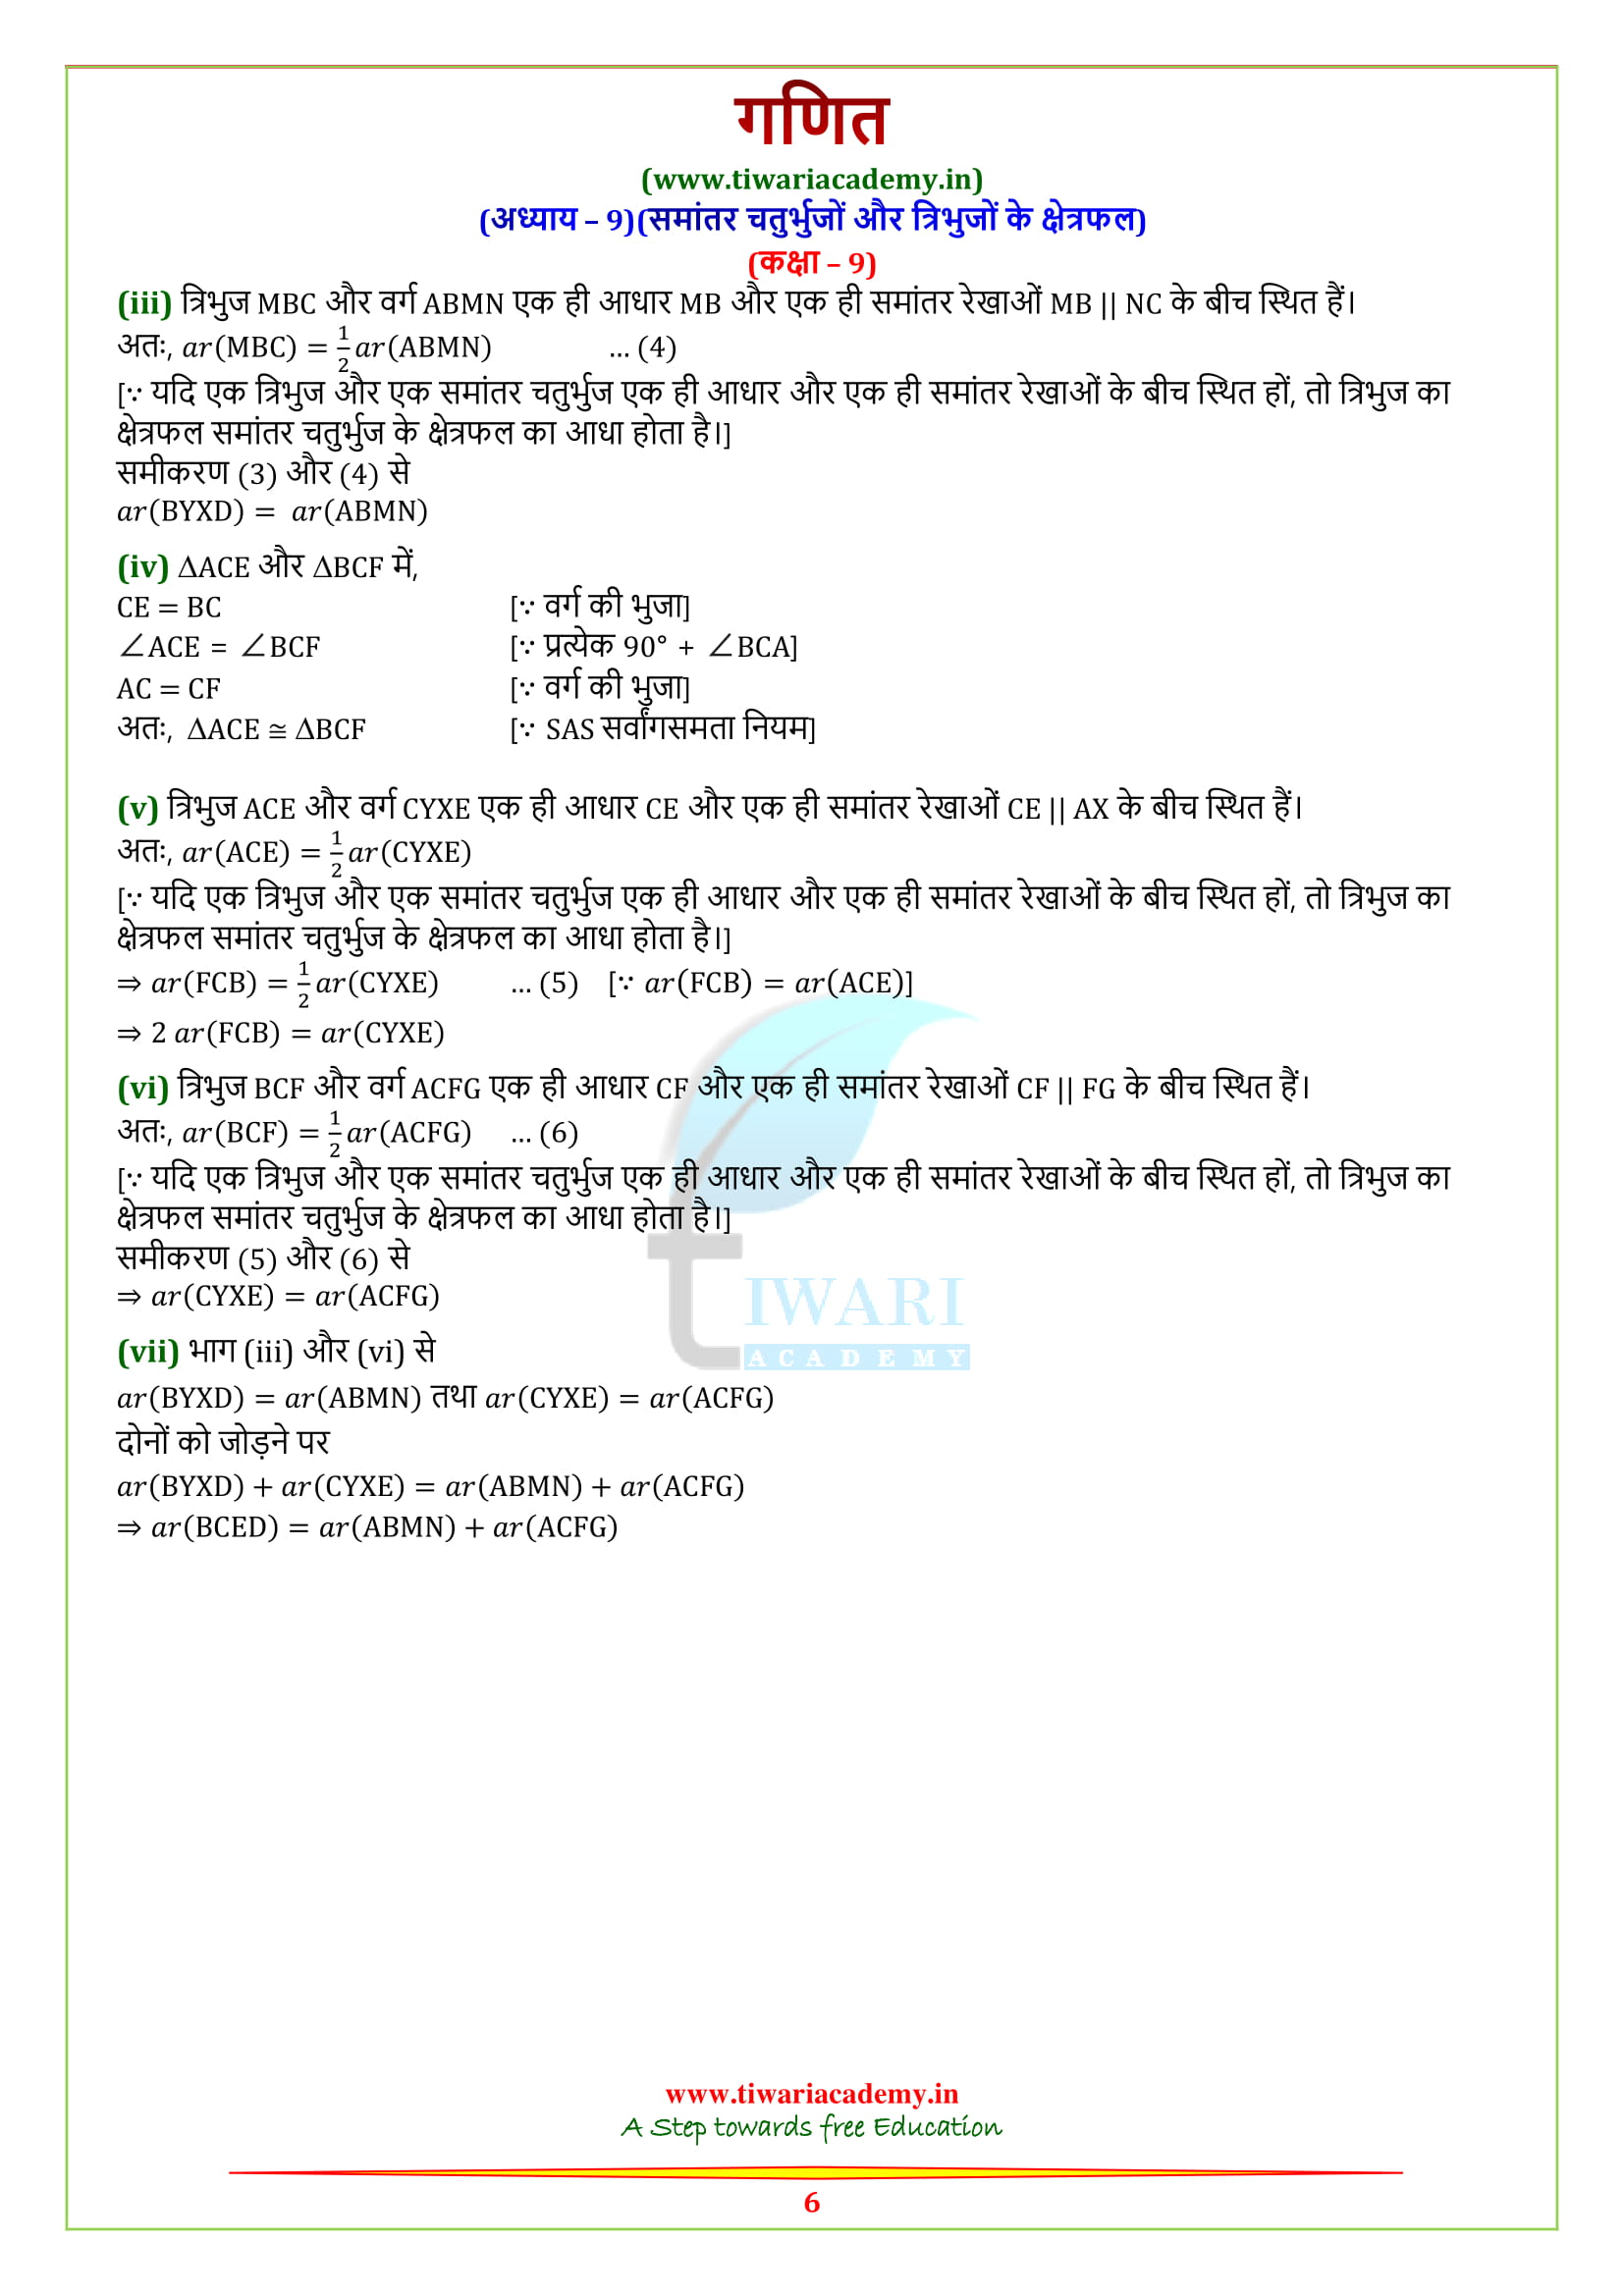 NCERT Solutions for class 9 Maths exercise 9.4 free to download